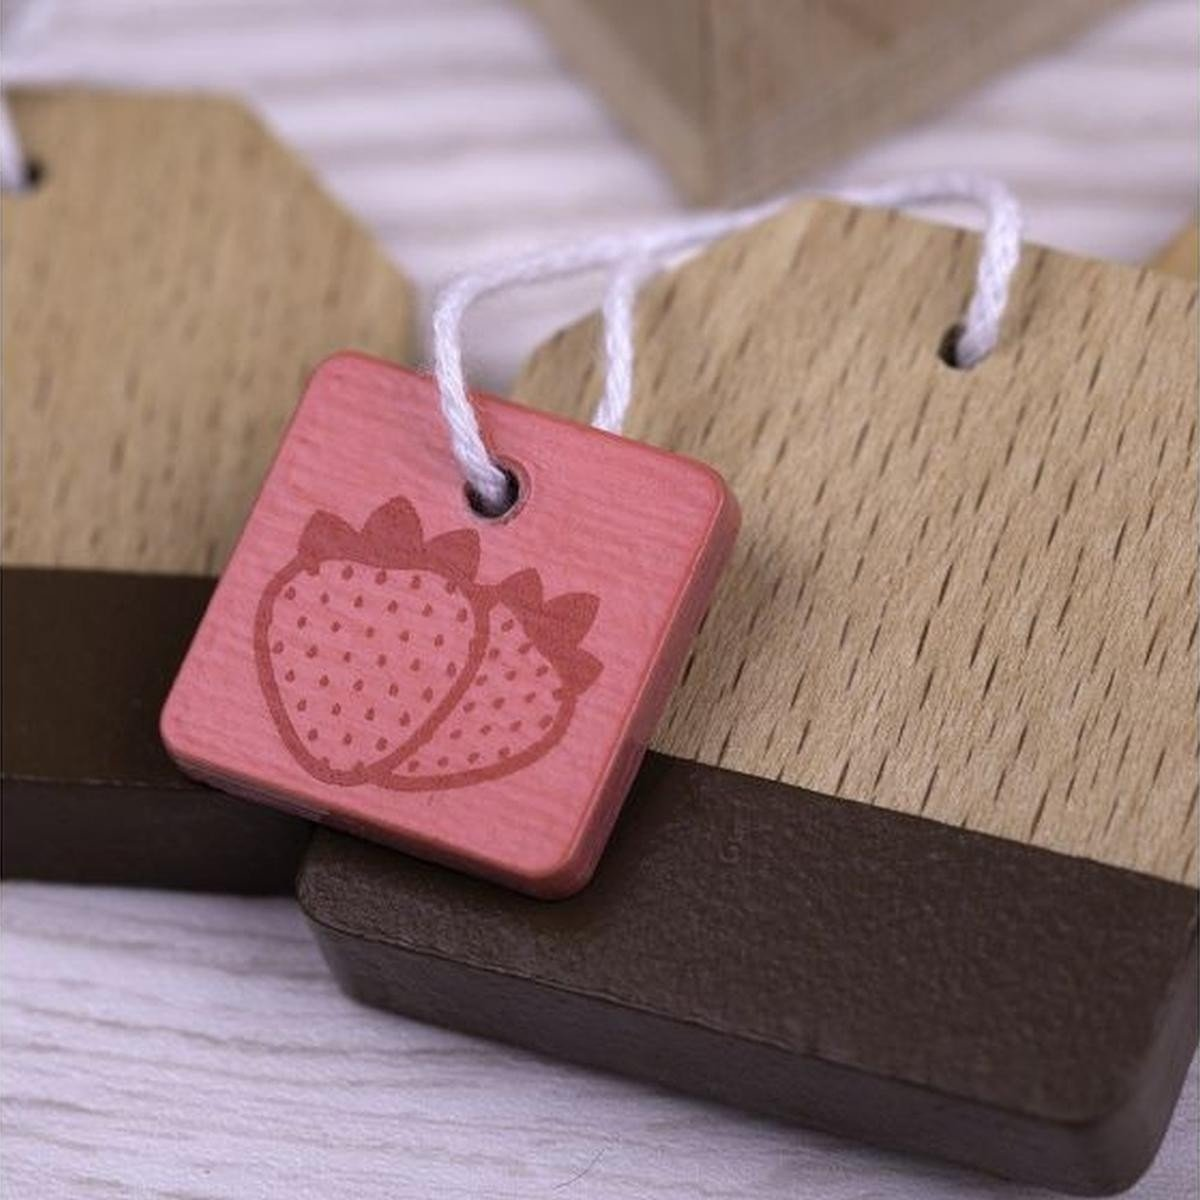 Wooden Toy Tea Bags Set Big Jigs Toys Pretend Play at Little Earth Nest Eco Shop